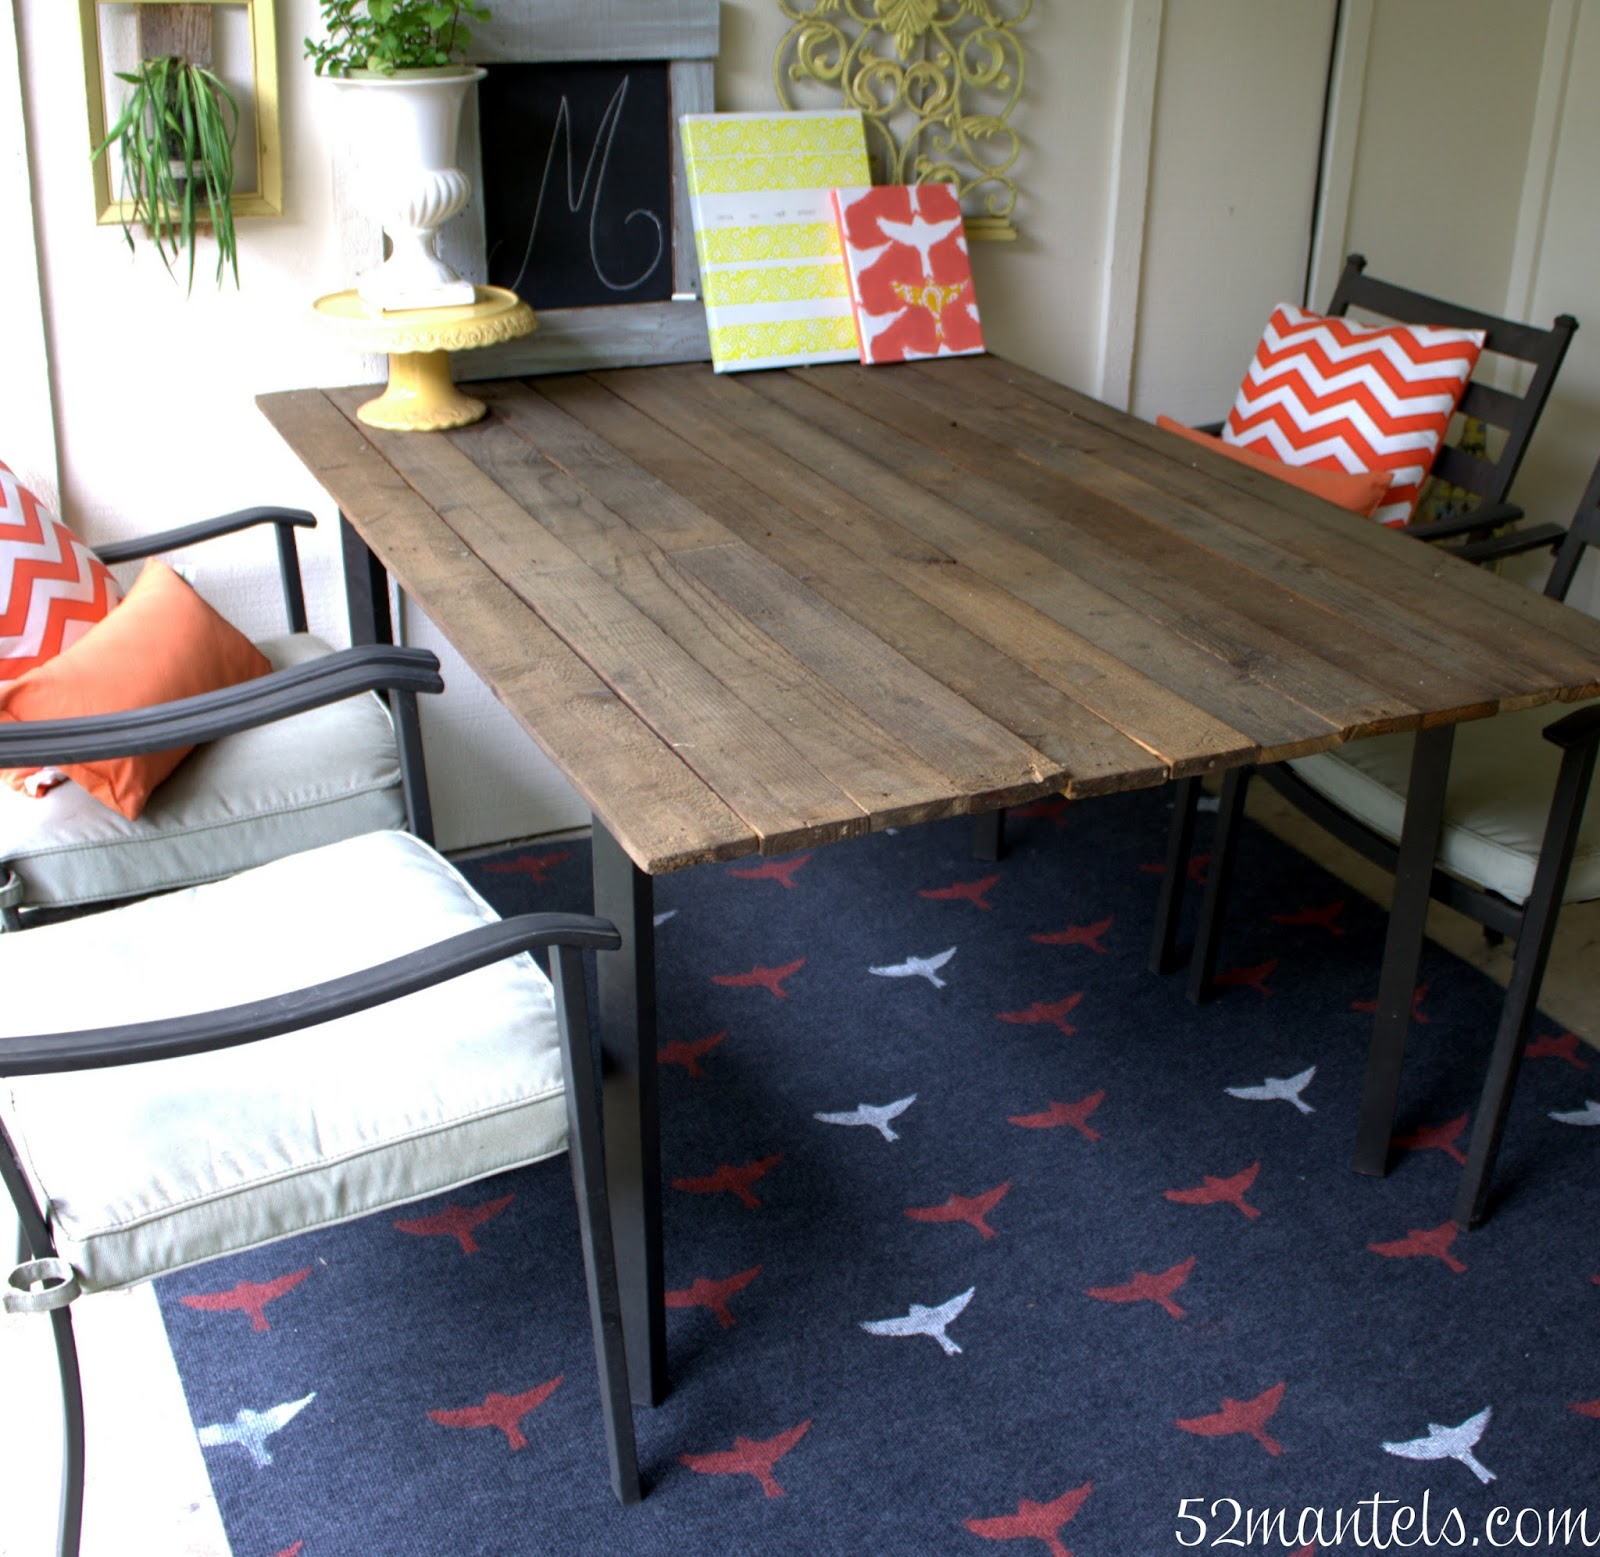 52 Vivacious Summer Porch Decor Ideas: 52 Mantels: Stenciled Outdoor Rug (Put A Bird On It